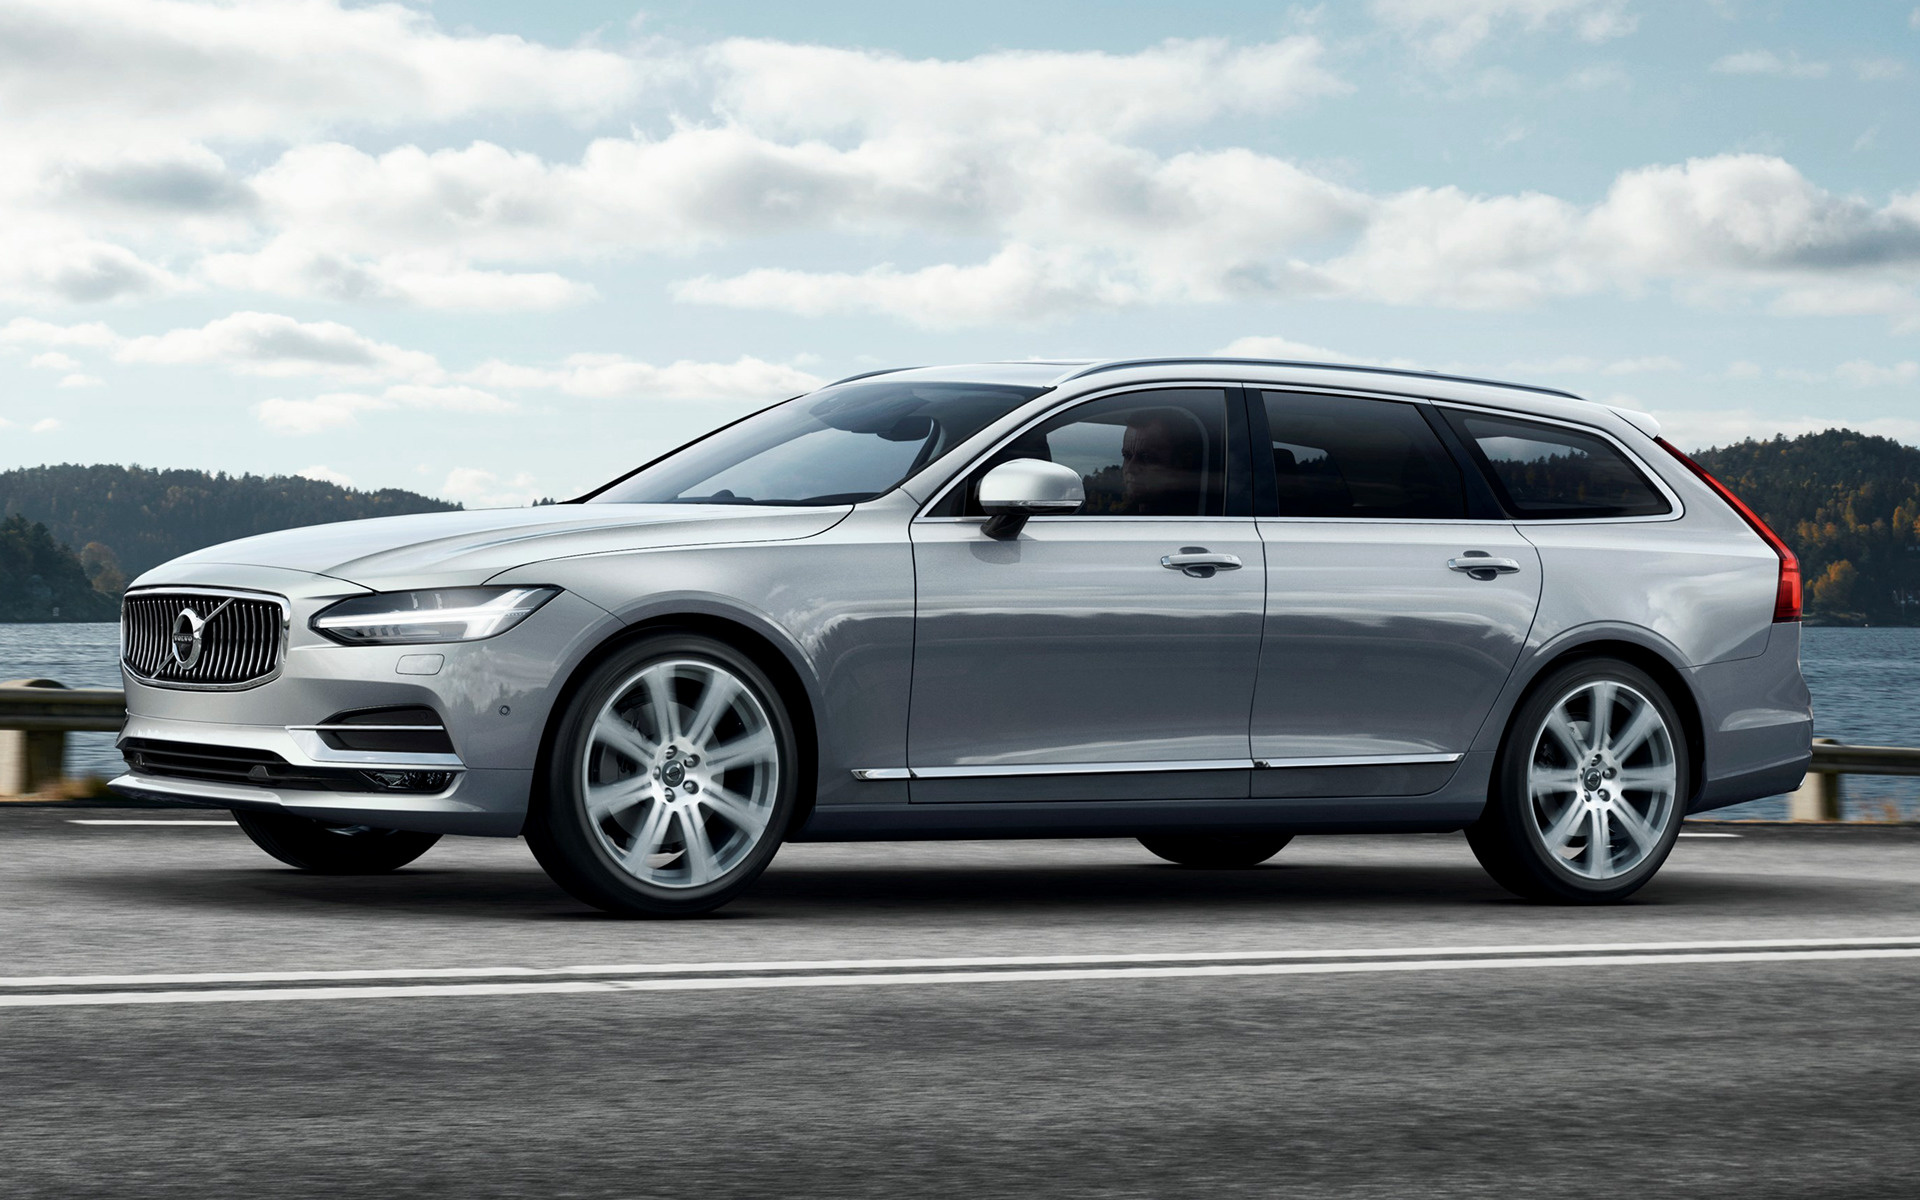 Volvo V90 Inscription (2016) Wallpapers and HD Images ...